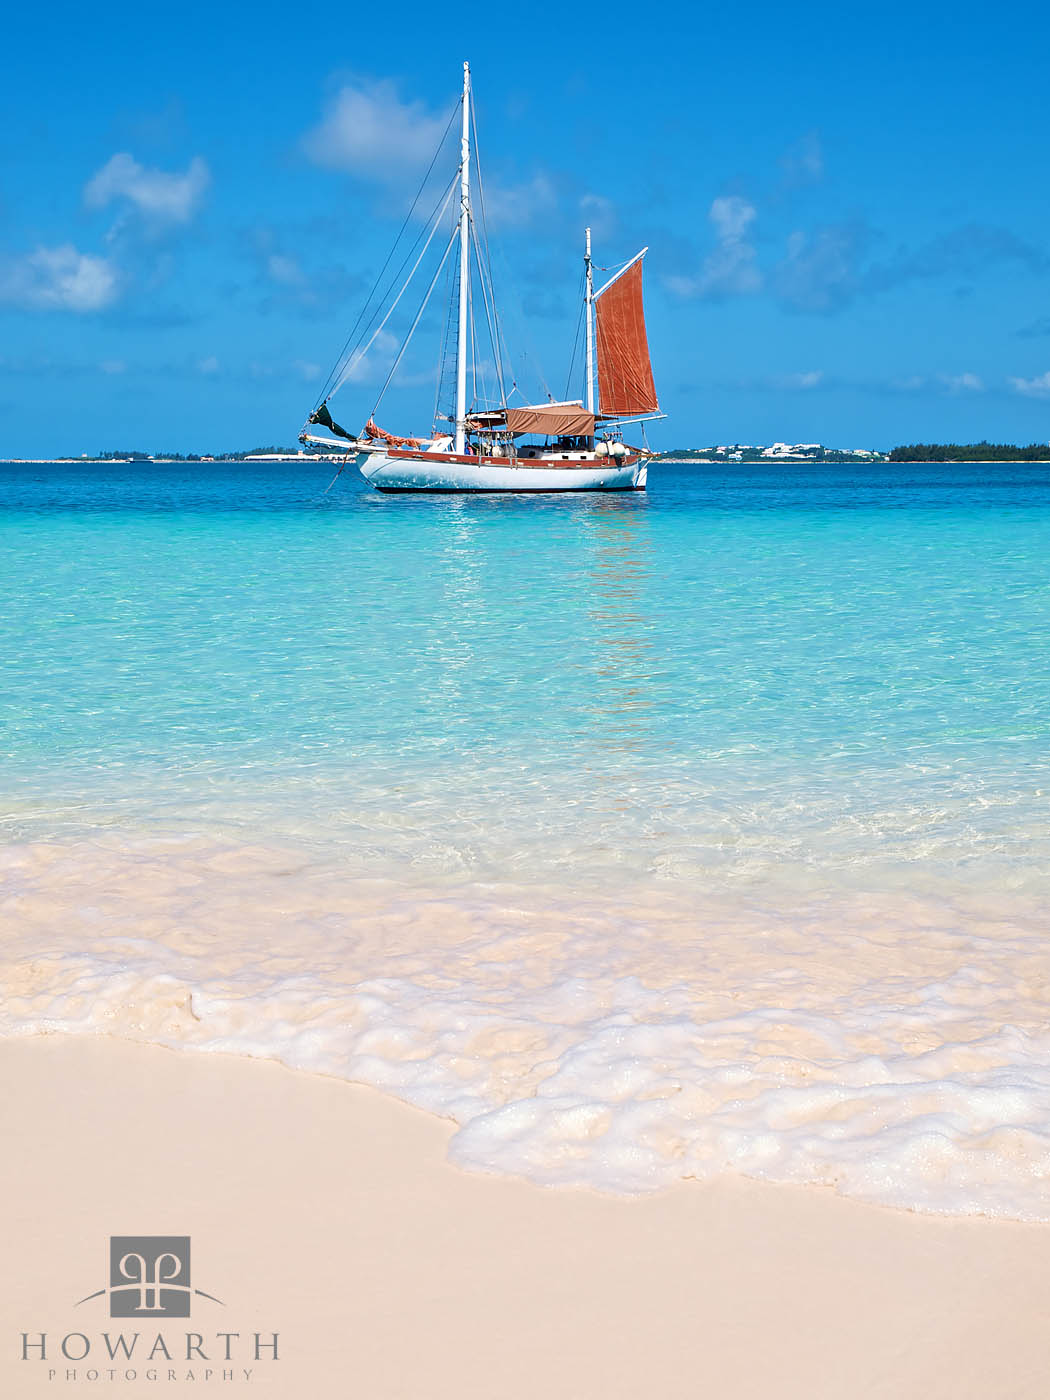 boat, anchor, beach, swim, sand, water, castle, island, st.georges, photo